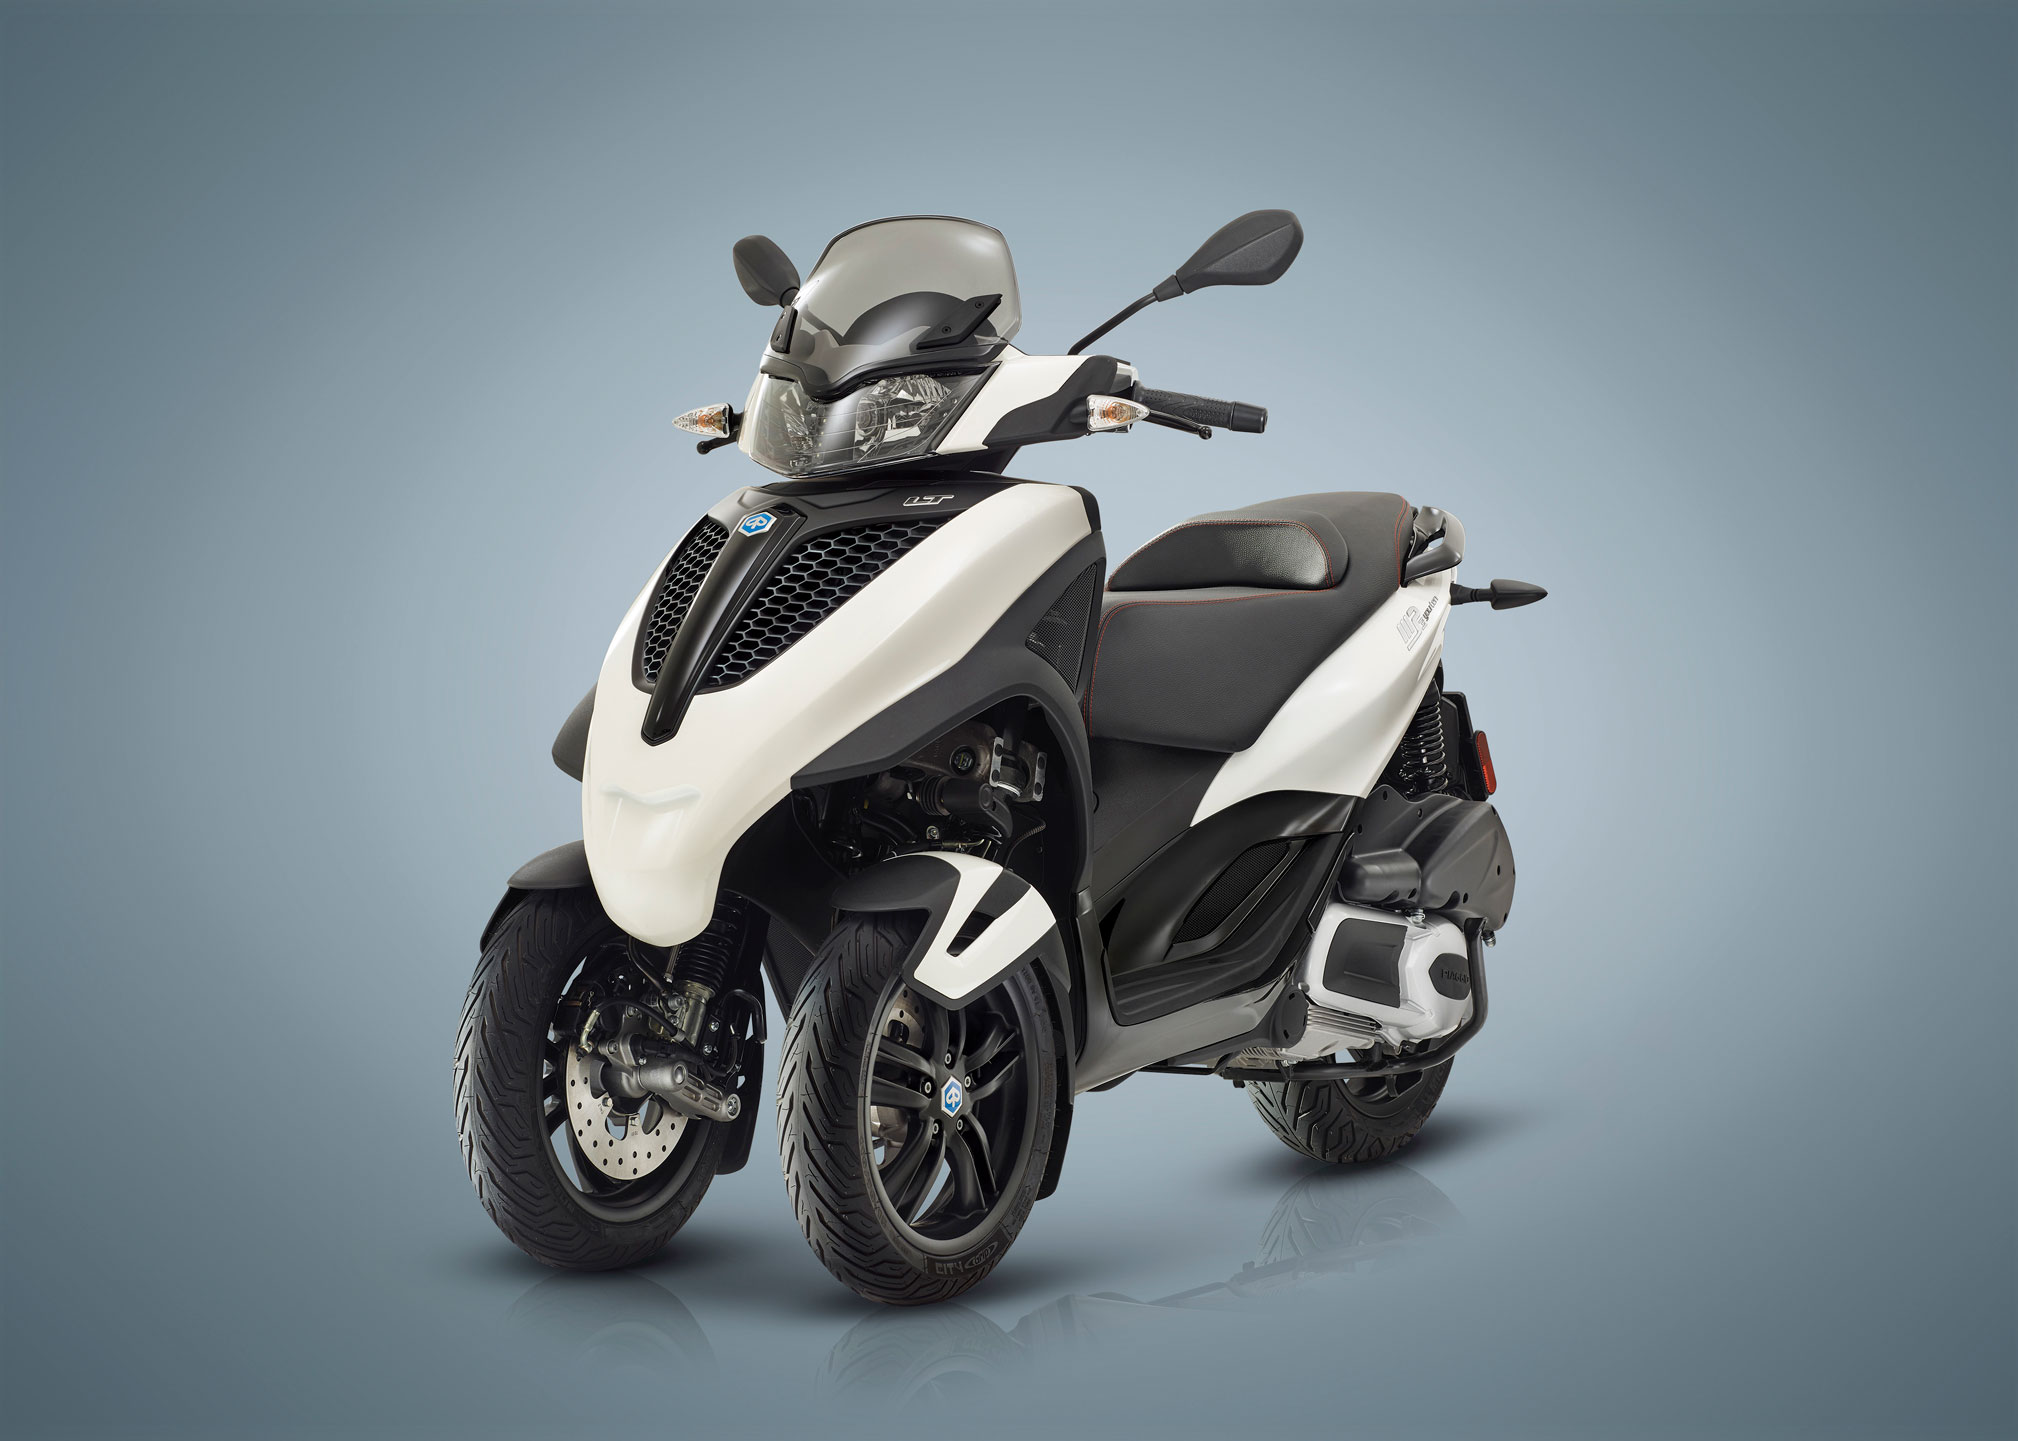 2018 piaggio mp3 300 yourban sport lt review total motorcycle. Black Bedroom Furniture Sets. Home Design Ideas